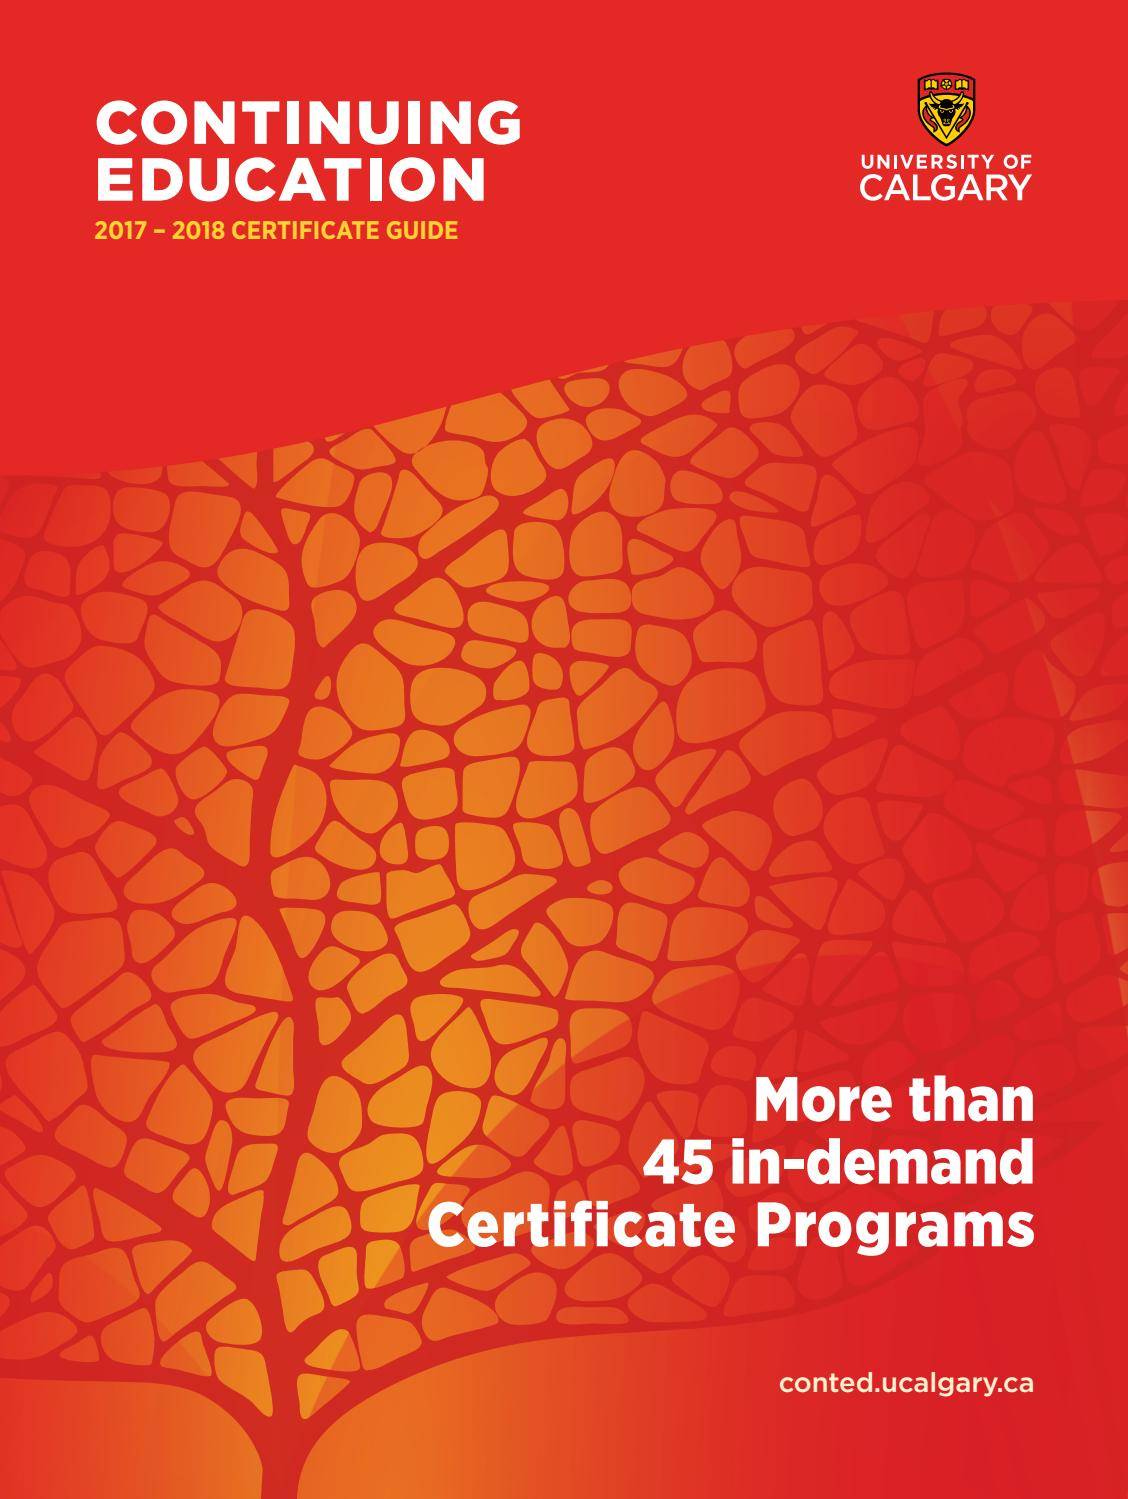 University of calgary continuing education certificate programs university of calgary continuing education certificate programs 2017 2018 by university of calgary continuing education issuu xflitez Gallery